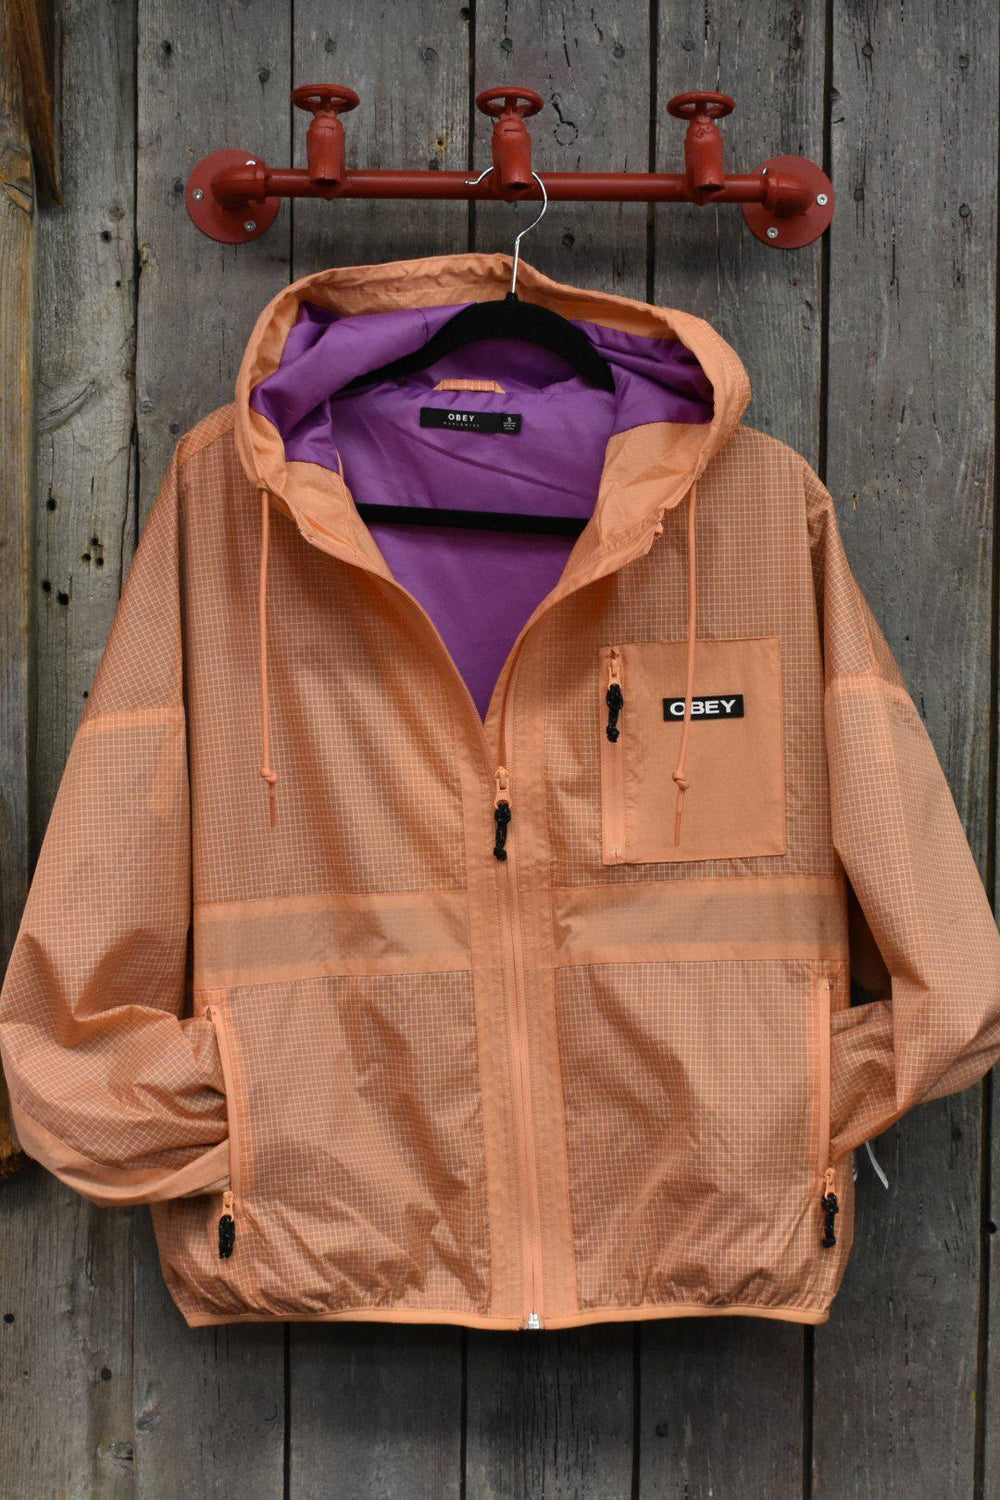 Obey Riverbed Zip Jacket-The Trendy Walrus